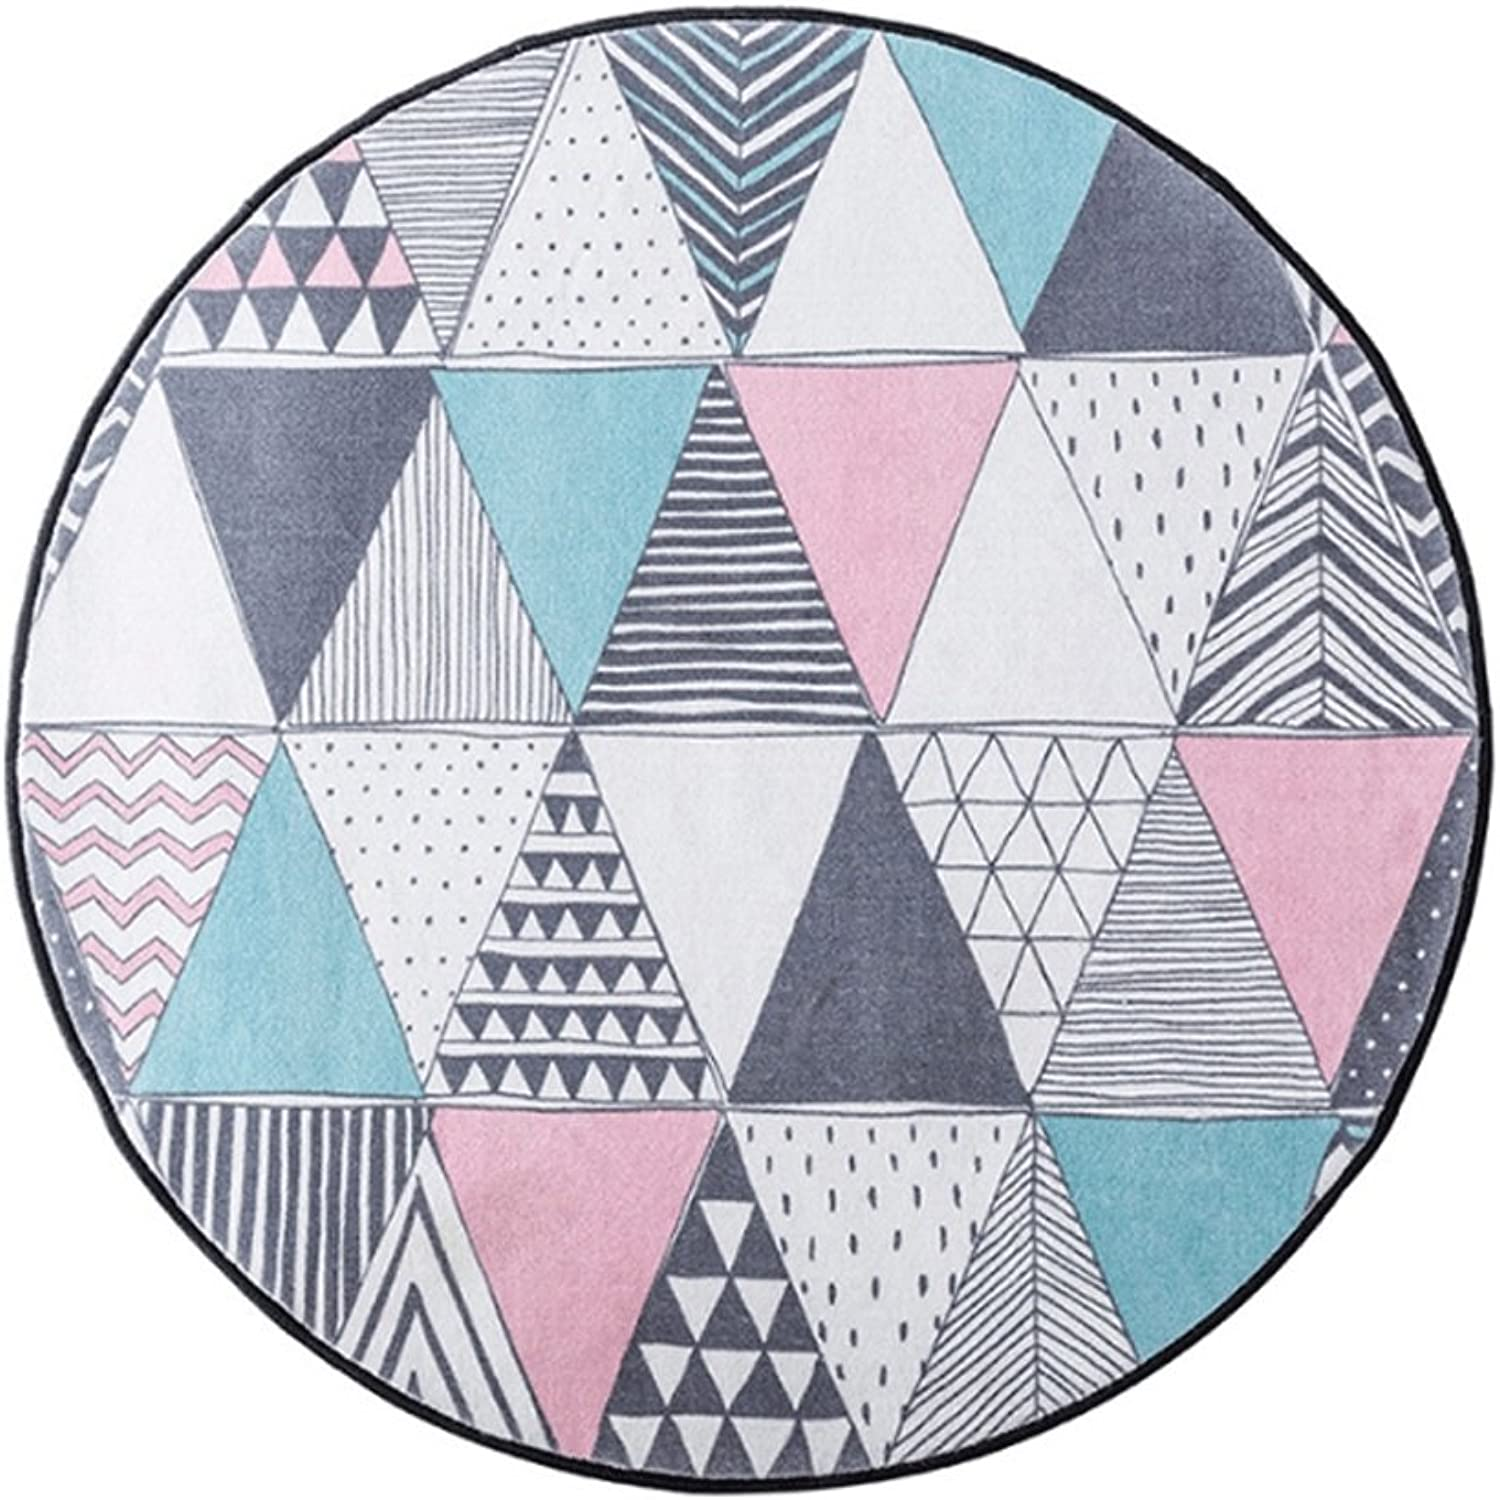 NJ Carpet- Geometric Round Carpet Parlor Coffee Table Mat Creative Marble Bedroom Computer Chair Upholstery (color   B, Size   100cm100cm)